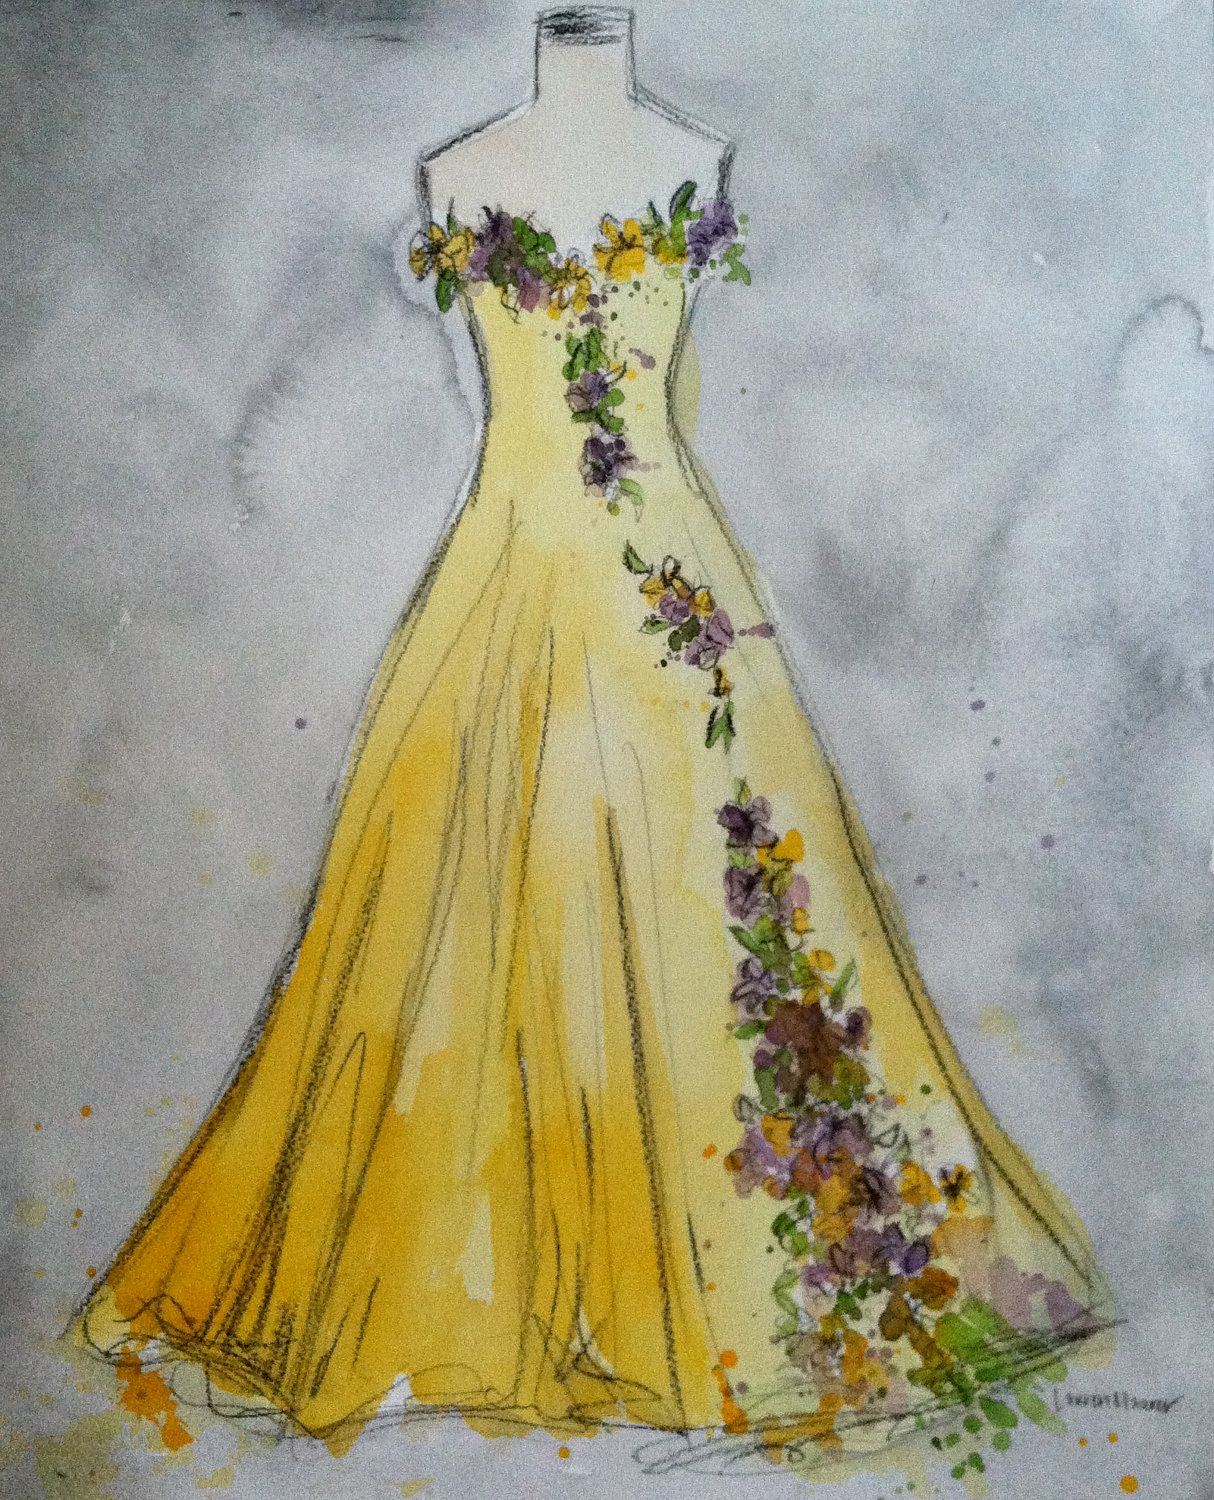 My Dress with Flowers. Original Watercolor